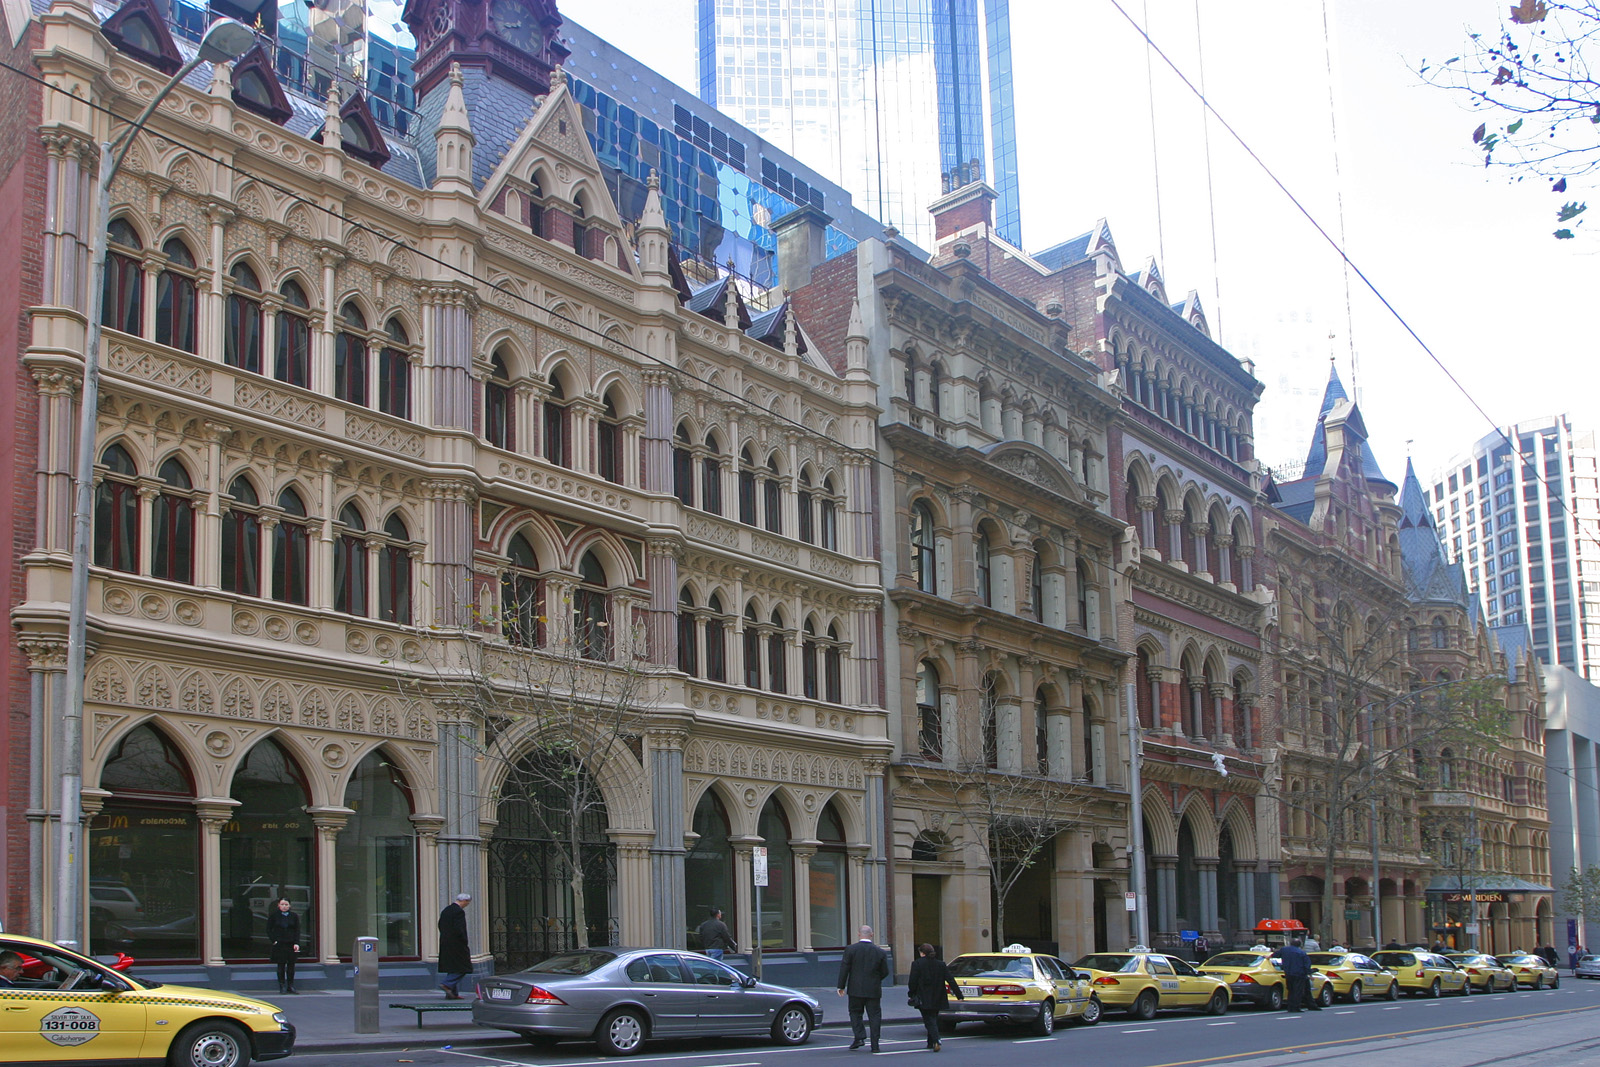 File:collins st architecture